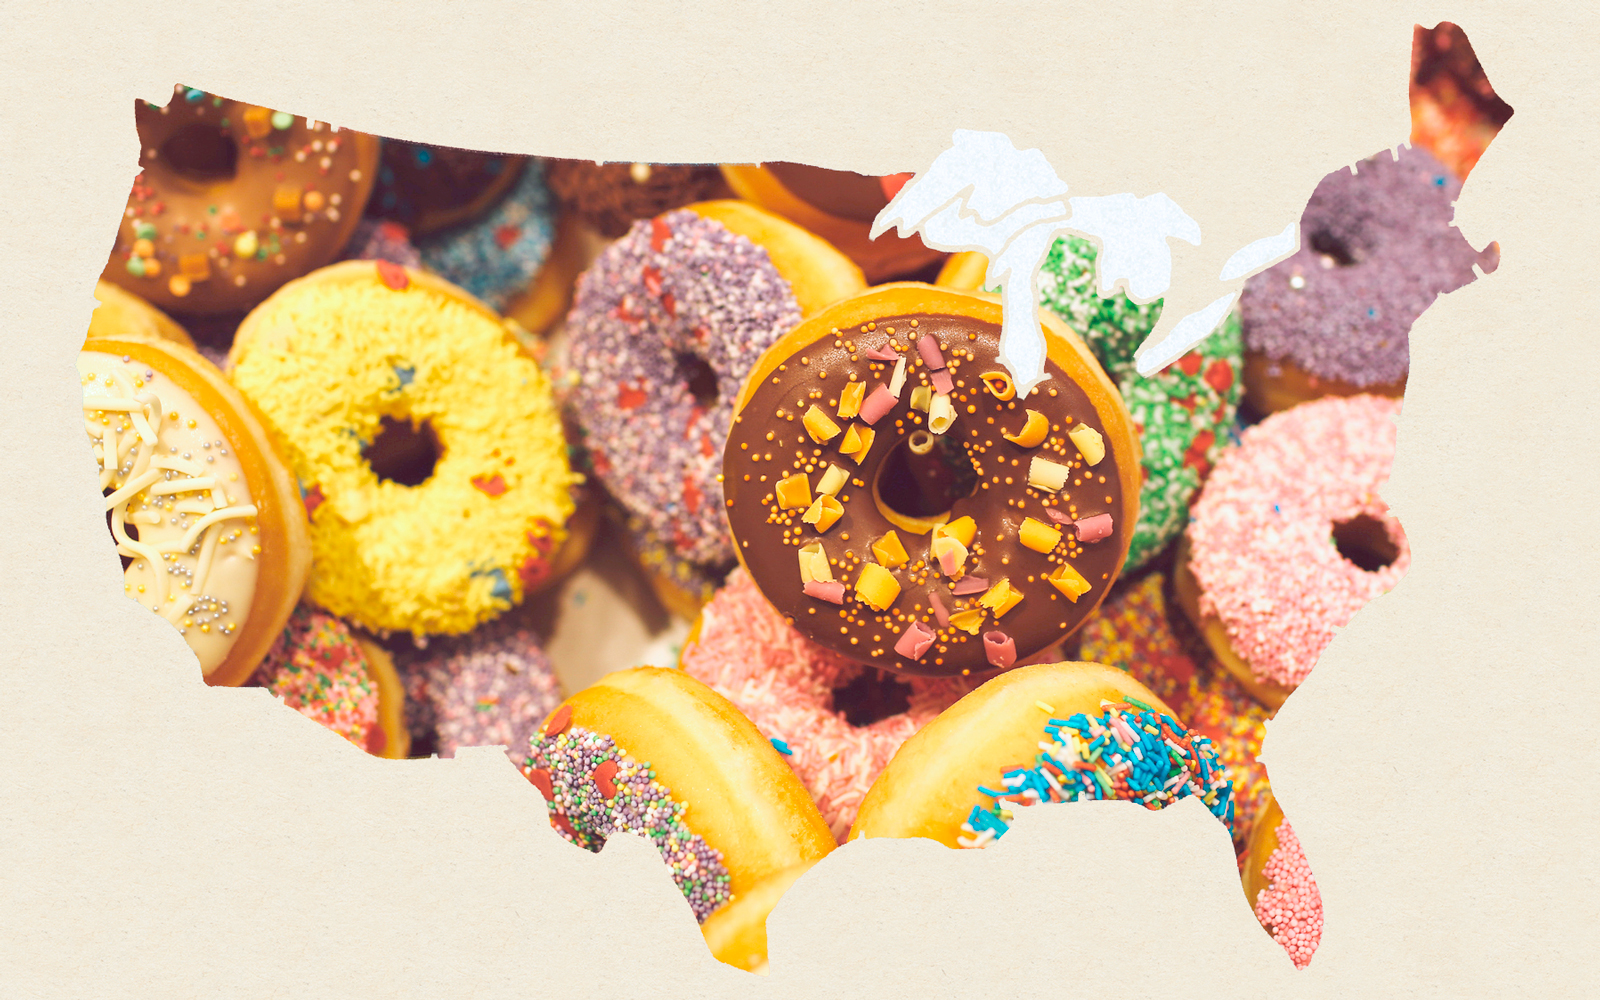 Map of United States with Donuts